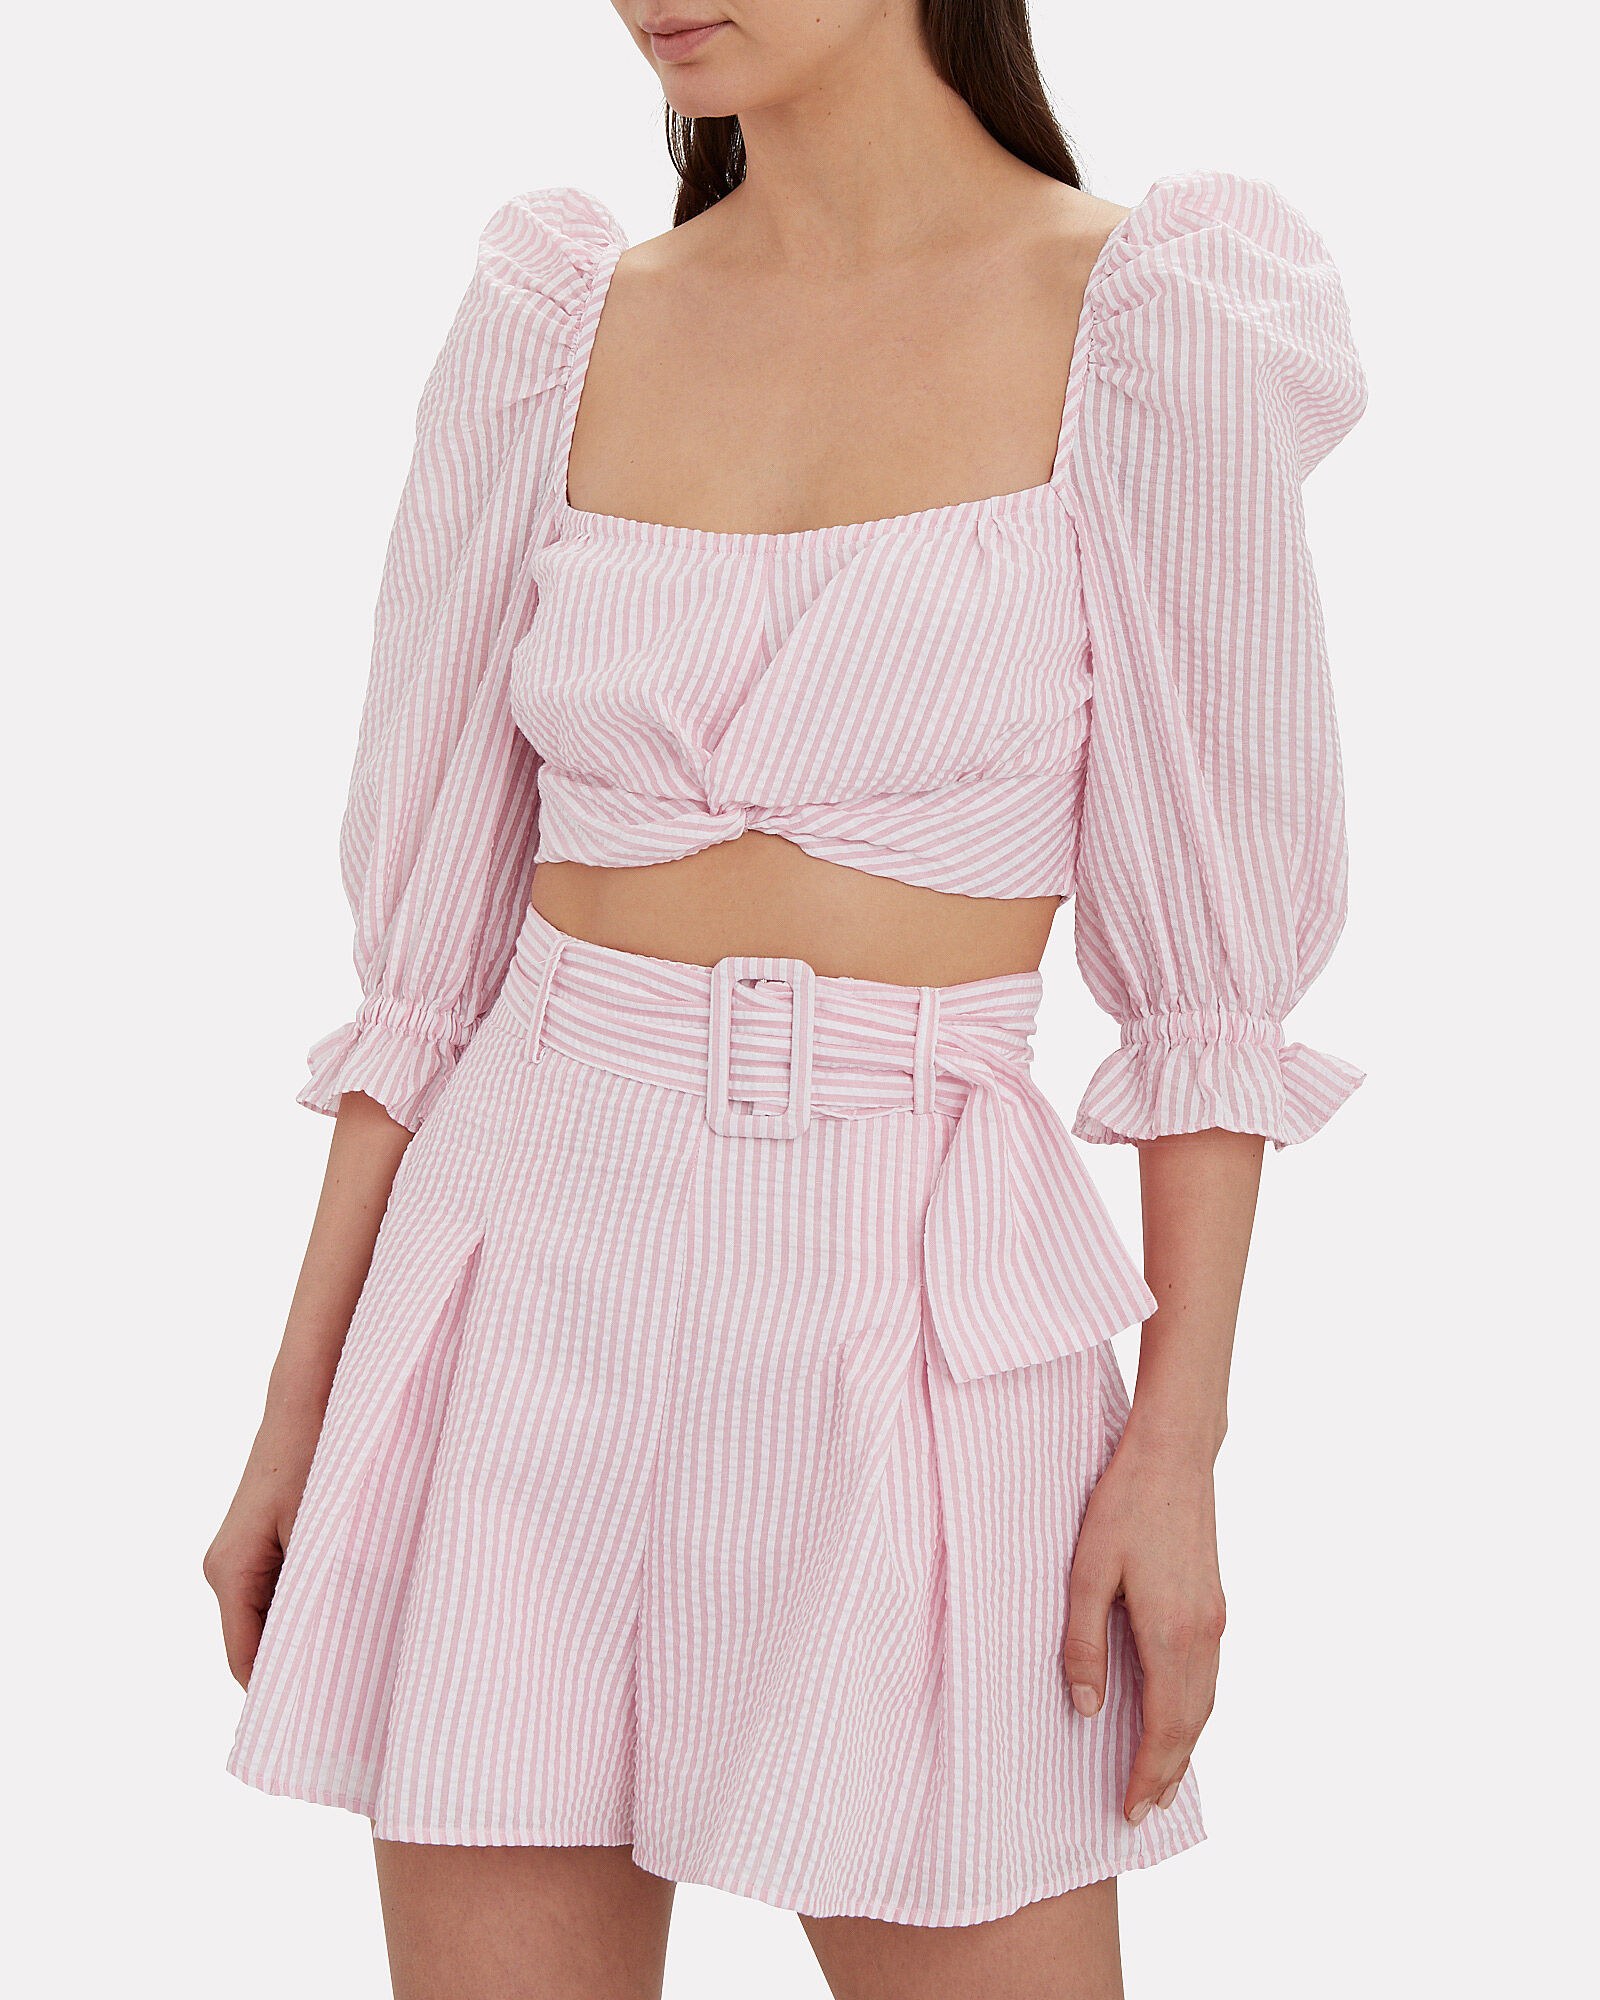 Say You Want Me Crop Top, PINK/WHITE, hi-res